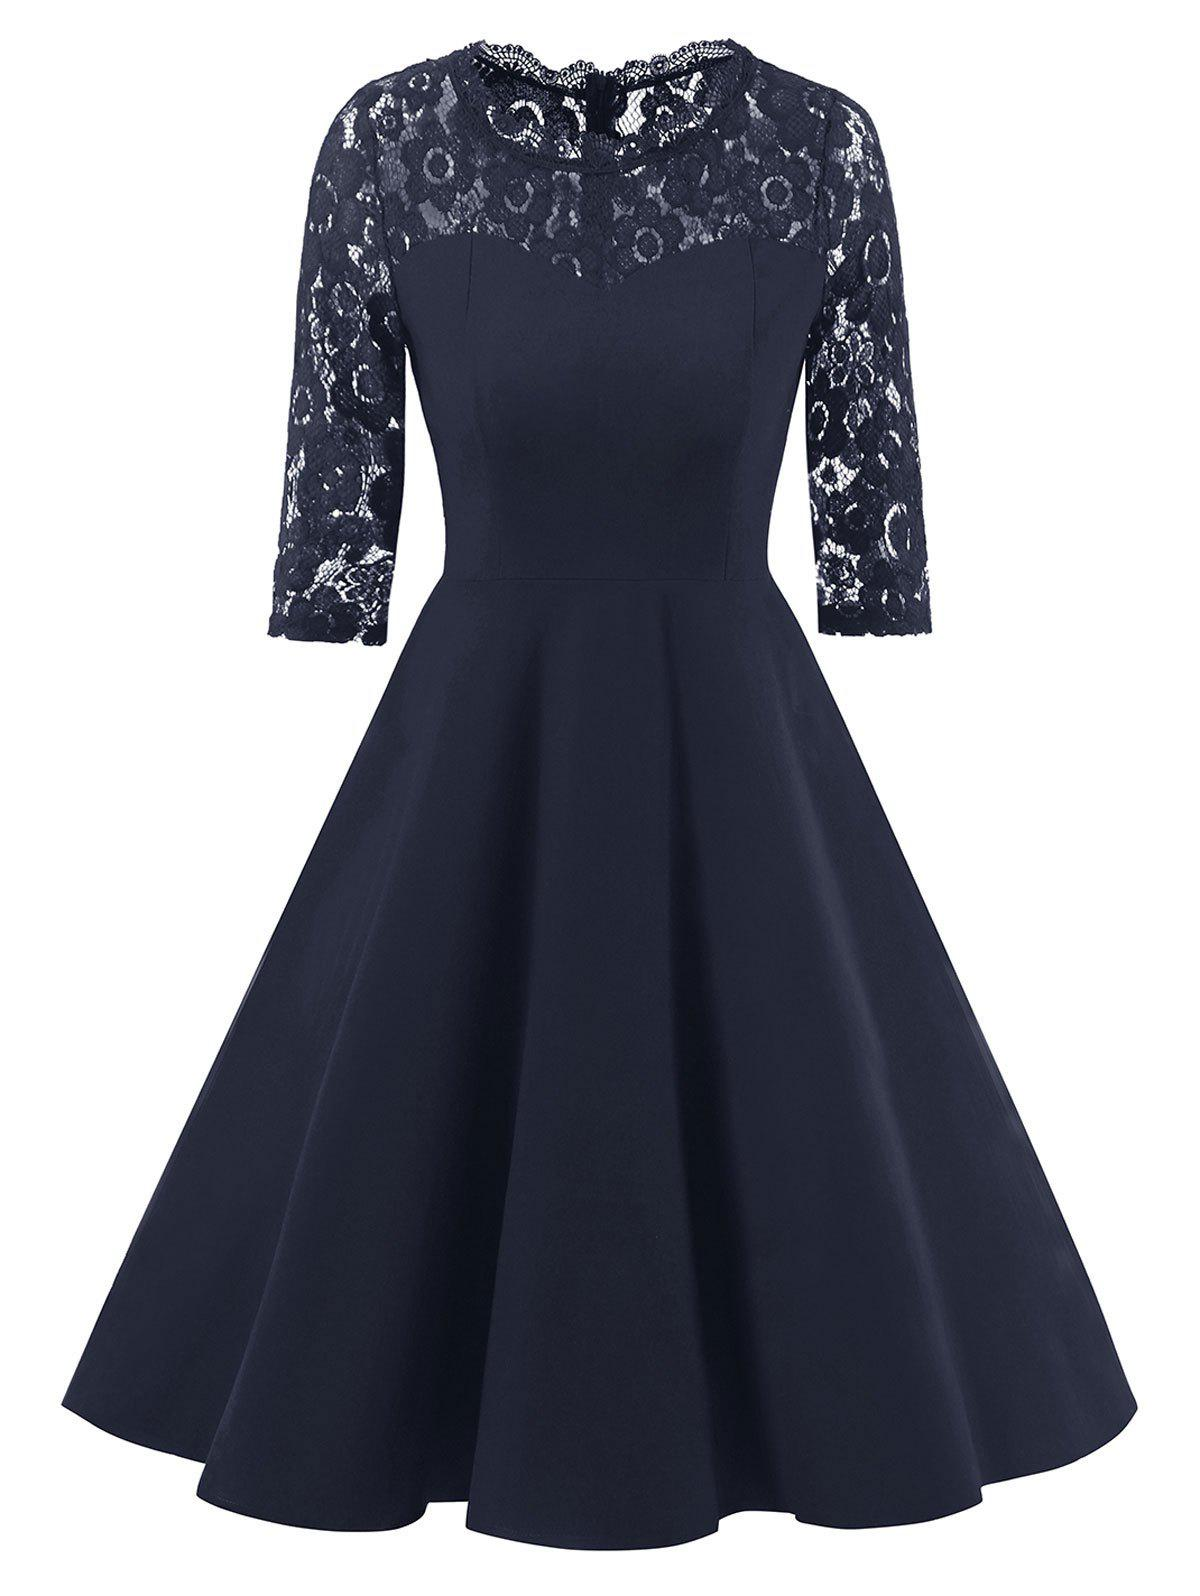 Vintage Formal Lace Trim A Line DressWOMEN<br><br>Size: M; Color: CADETBLUE; Style: Vintage; Material: Polyester,Spandex; Silhouette: A-Line; Dresses Length: Knee-Length; Neckline: Round Collar; Sleeve Length: 3/4 Length Sleeves; Embellishment: Lace; Pattern Type: Solid; With Belt: No; Season: Fall,Spring; Weight: 0.4050kg; Package Contents: 1 x Dress;